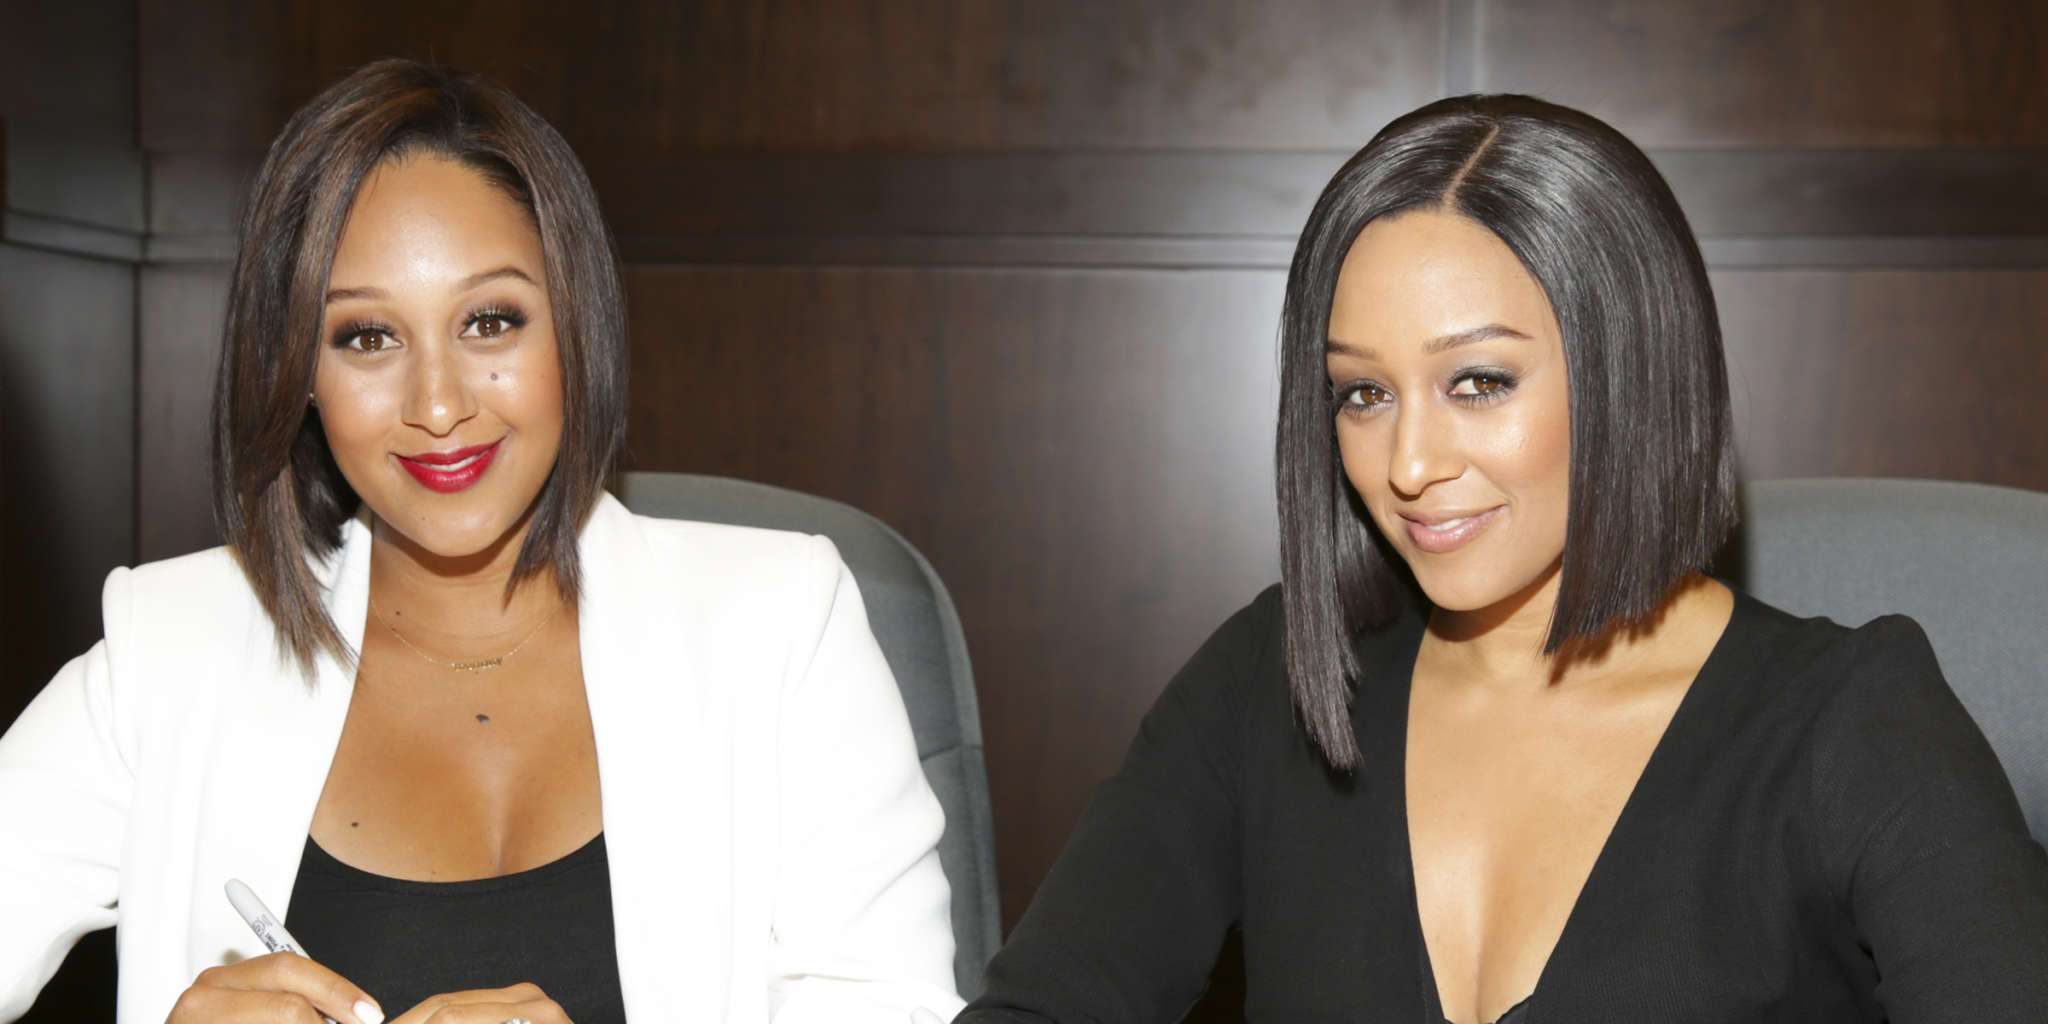 Tia And Tamera Mowry Have Not Seen Each Other In Six Months — Twins Bracing For Tearful Reunion